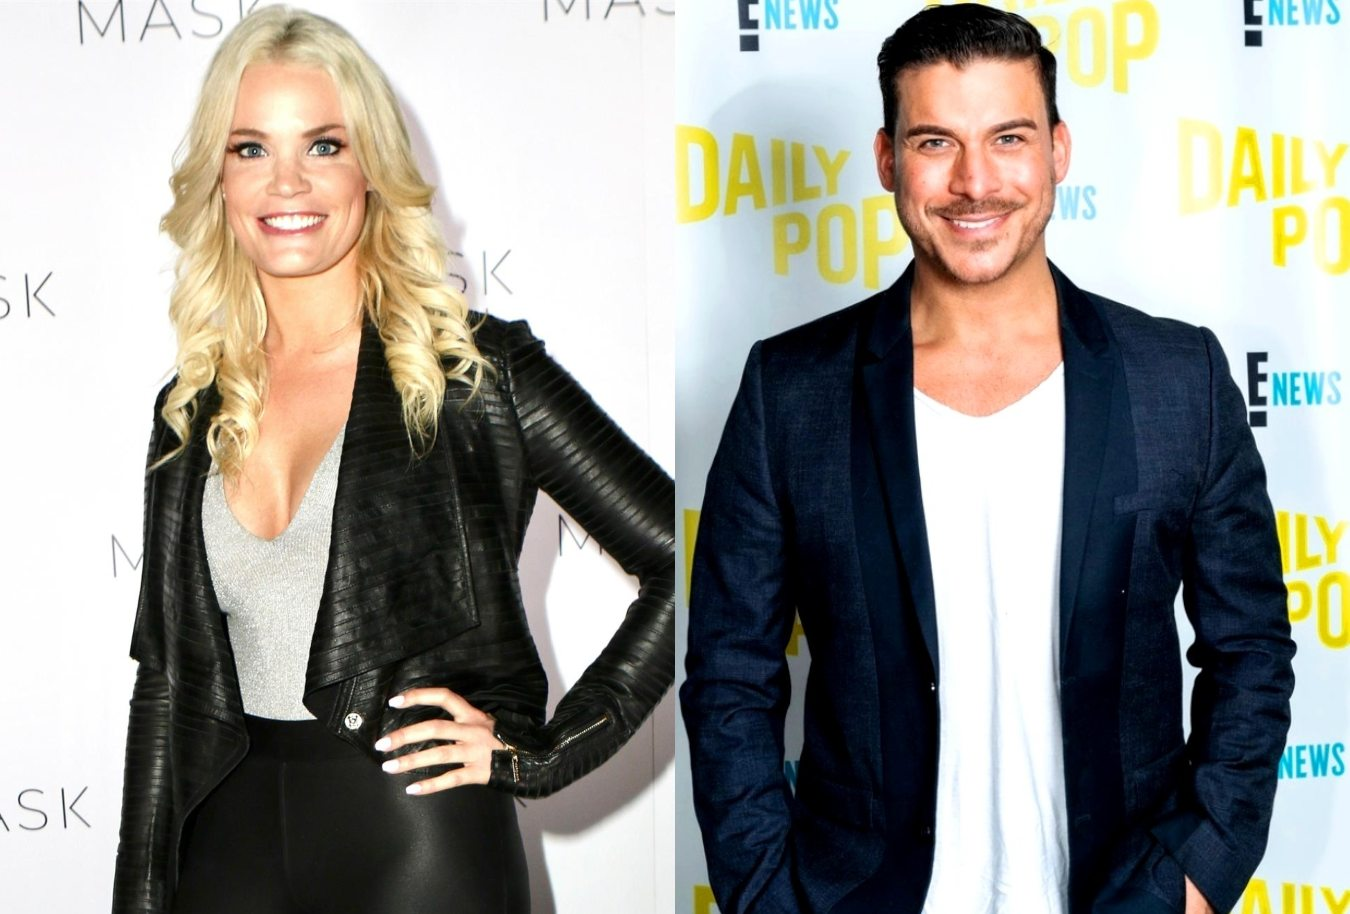 """Ashley Martson Shares Posts of Jax Taylor Calling Her """"Poor White Trash"""" and Speaking Negatively About Her Kids, Slams Him as a """"Lying Racist"""" as Randall Emmett Unfollows Vanderpump Rules Star"""